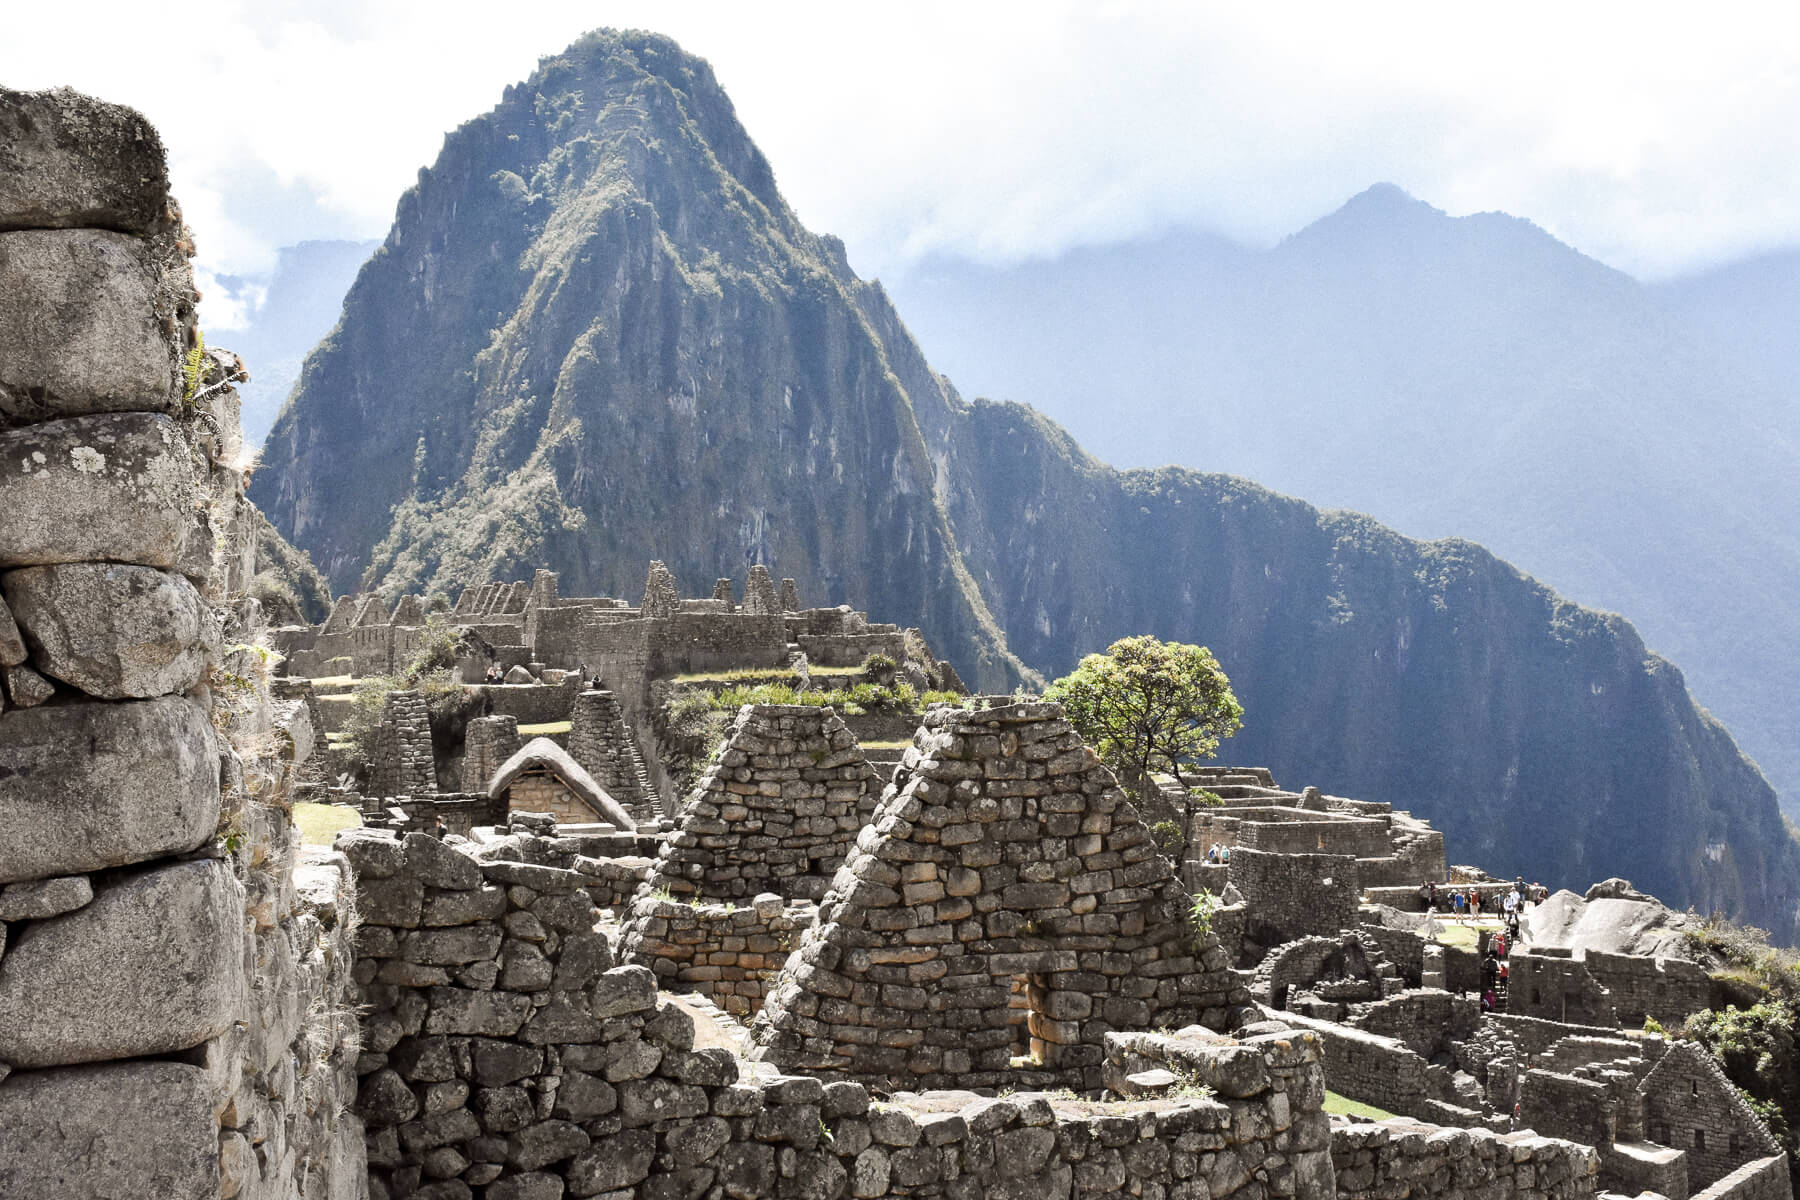 Close up of the Machu Picchu ruins - stone walls and temples with mountains behind